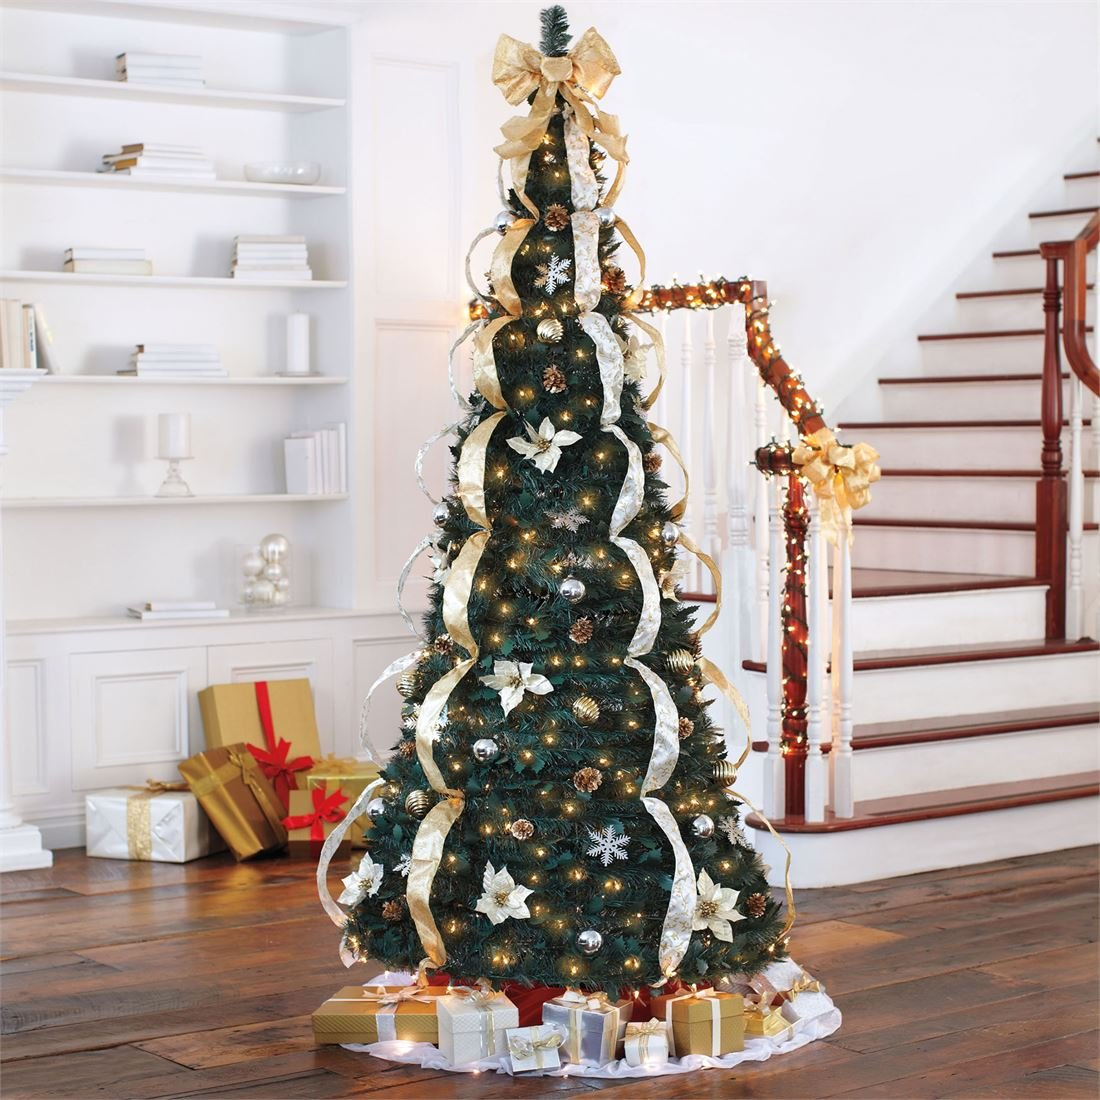 amazoncom brylanehome 712 deluxe pop up christmas tree silver gold0 home kitchen - Pop Up Decorated Christmas Tree